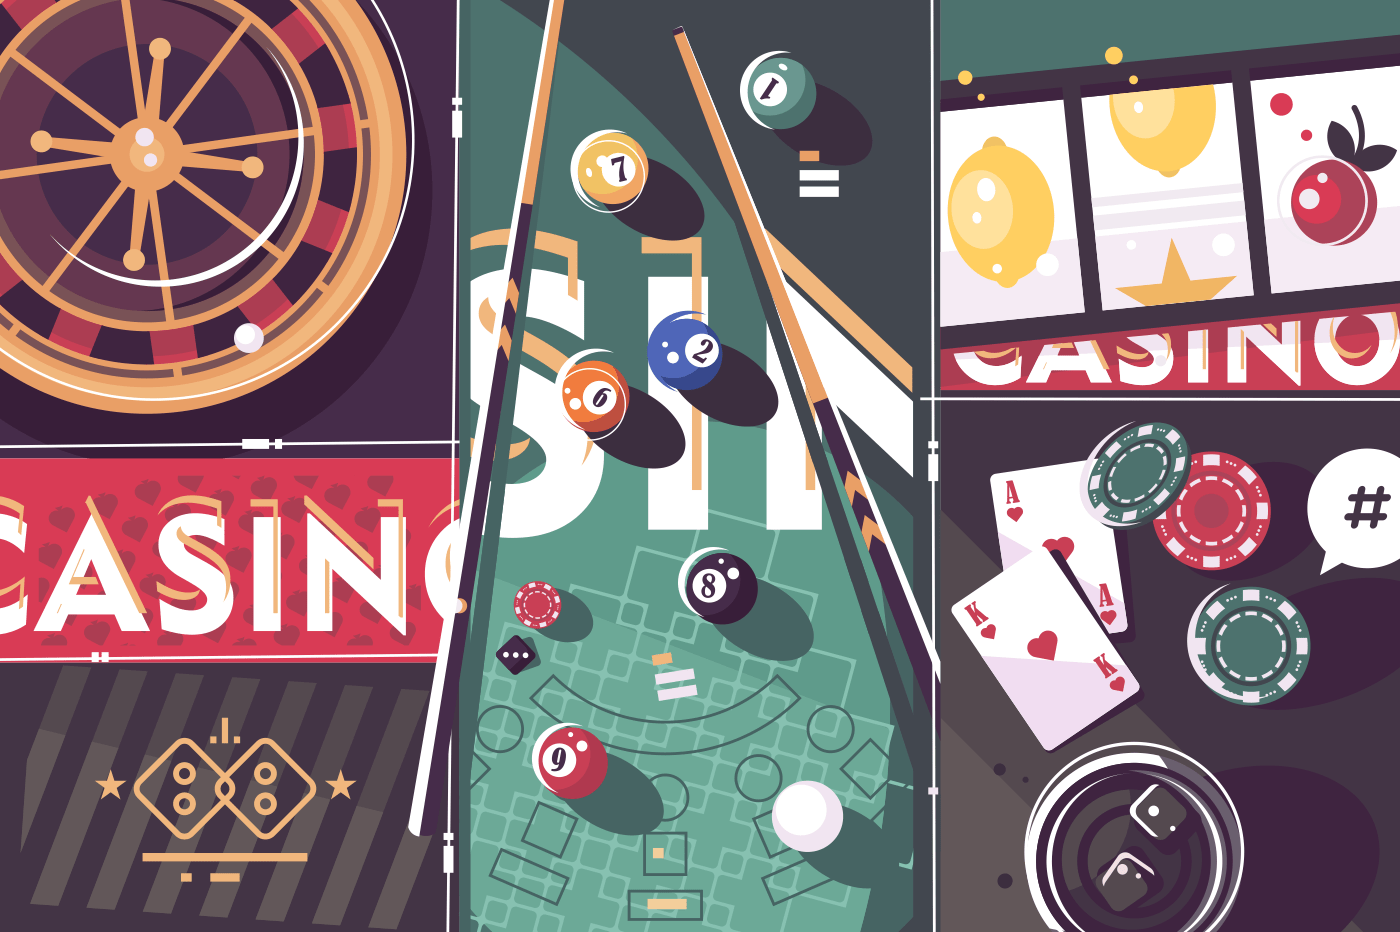 Gambling game casino abstract background. Roulette and billiard, poker and slot machine. Vector illustration